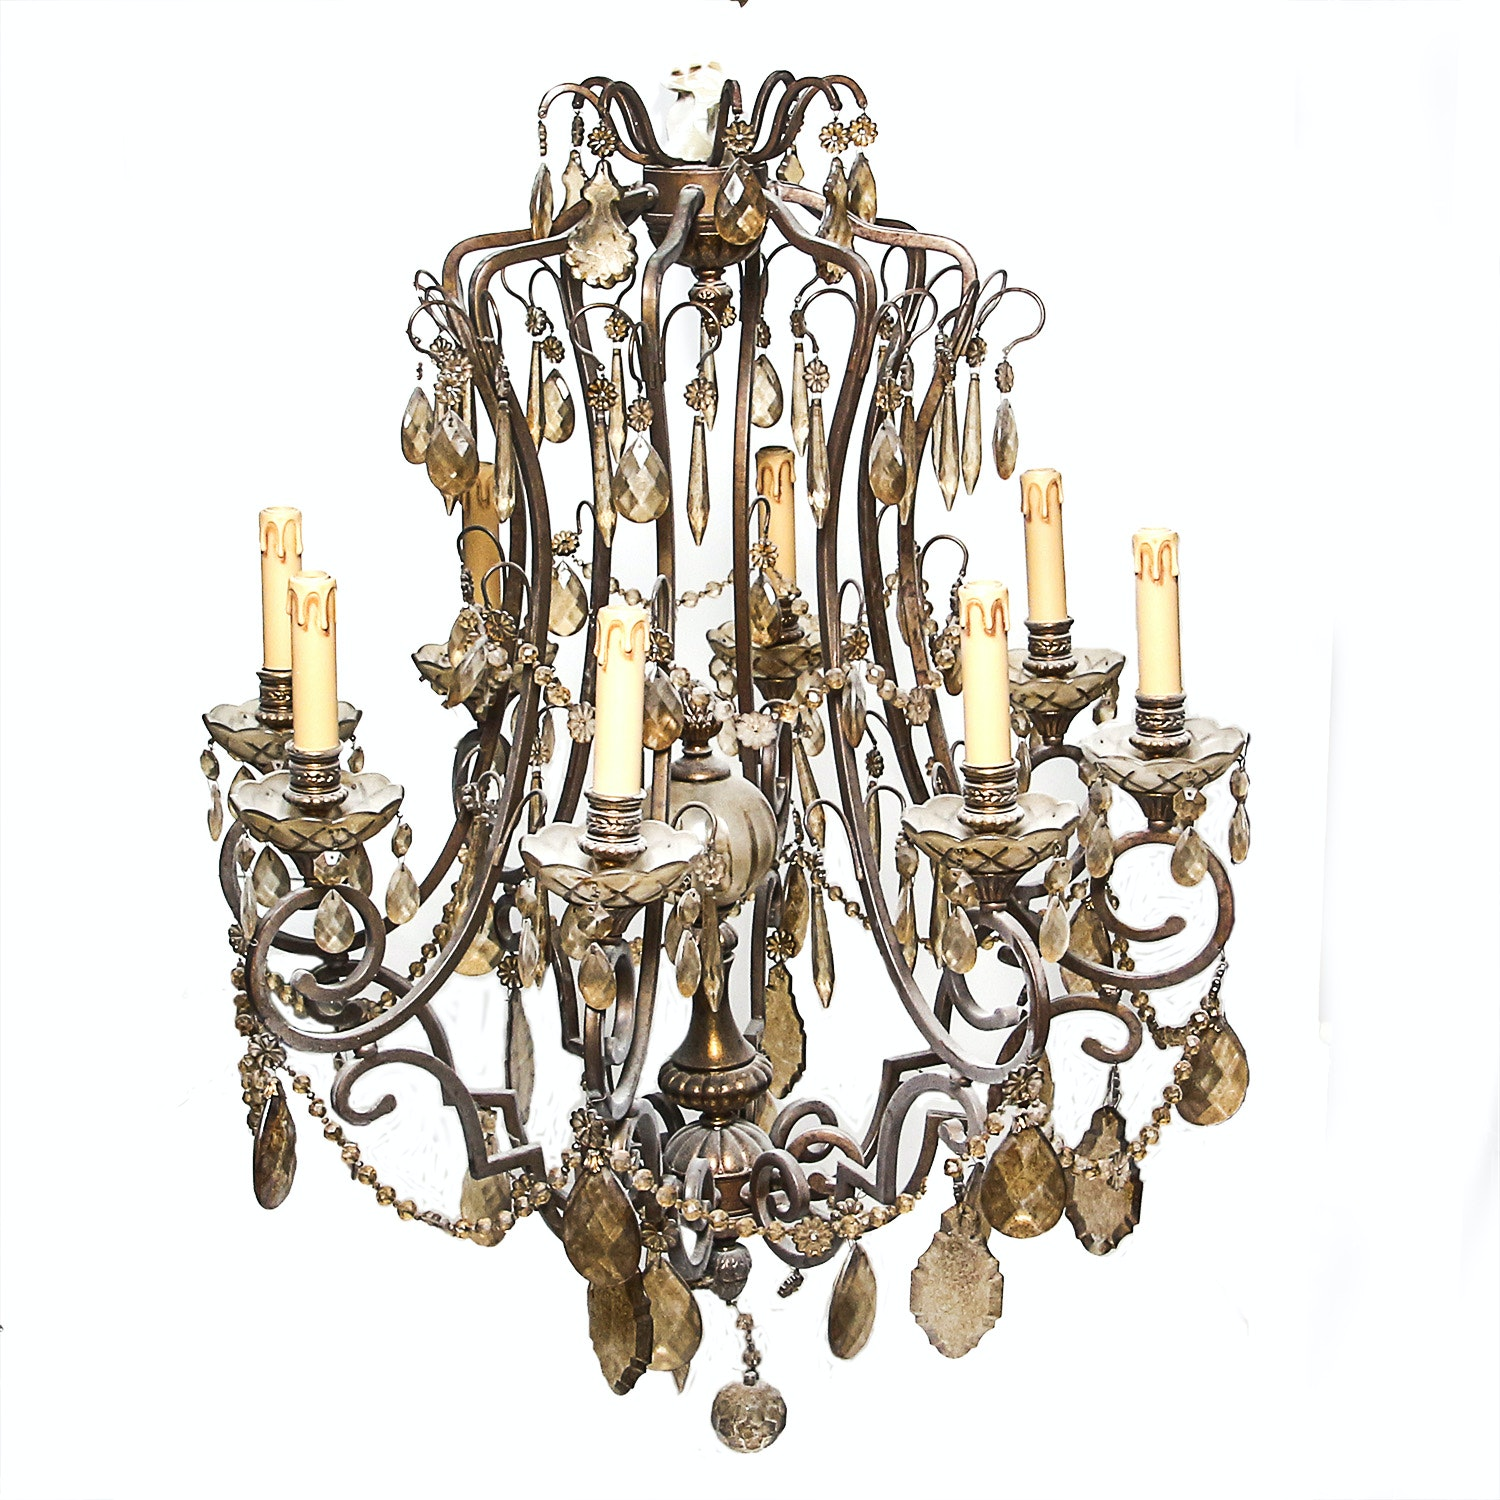 Ornate Vintage Chandelier with Smoked Glass Prisms